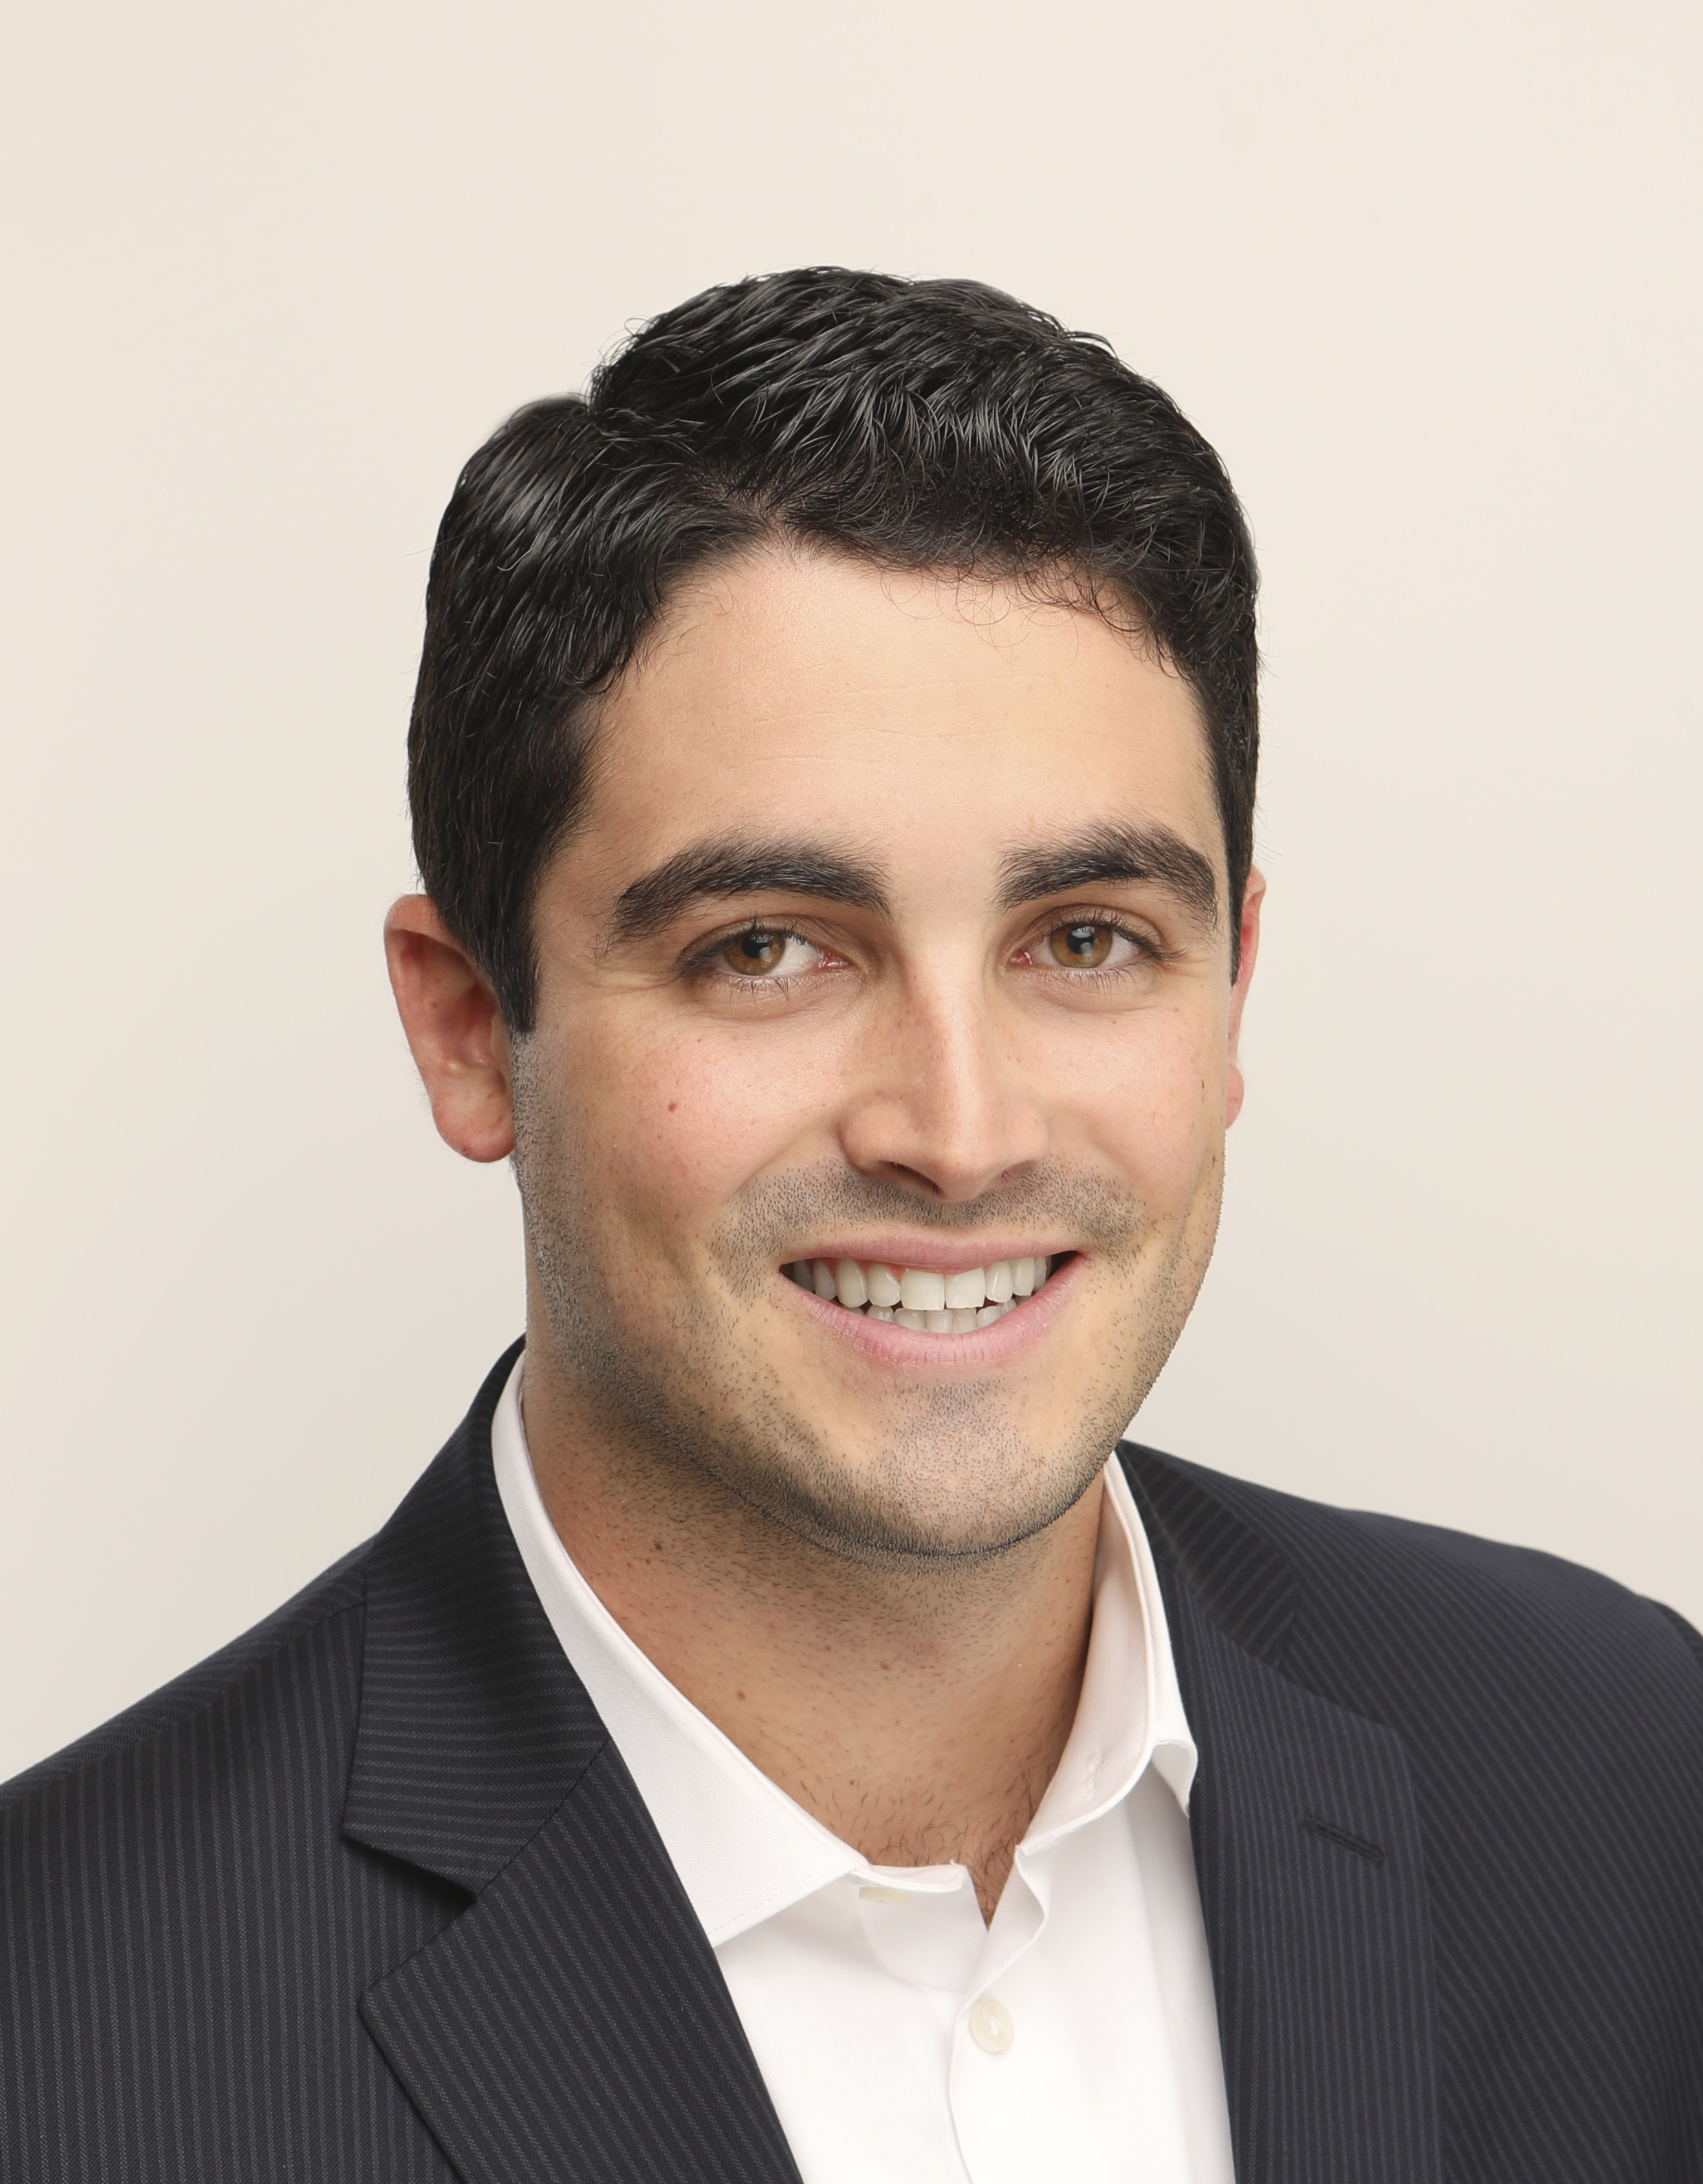 Zachary Elman, HUB INTERNATIONAL NORTHEAST